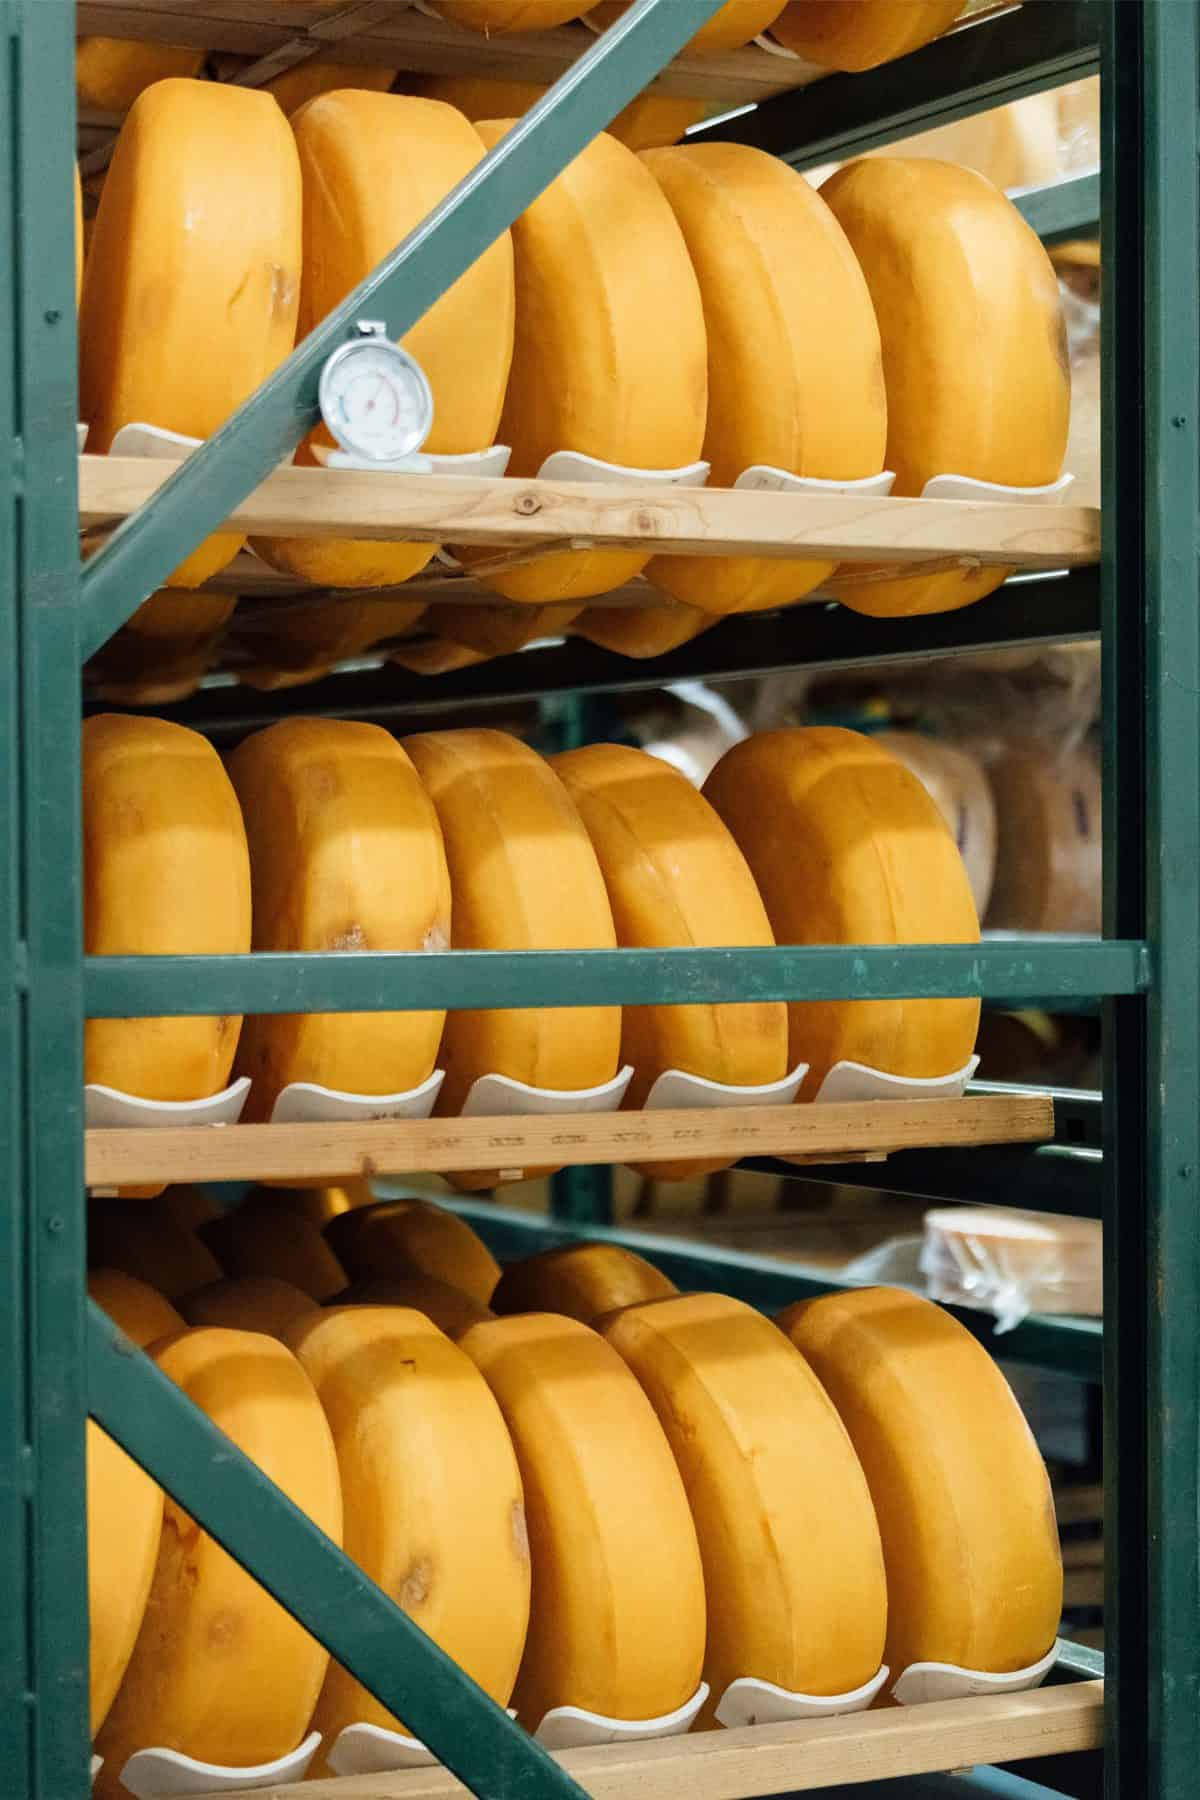 Cheese in aging room